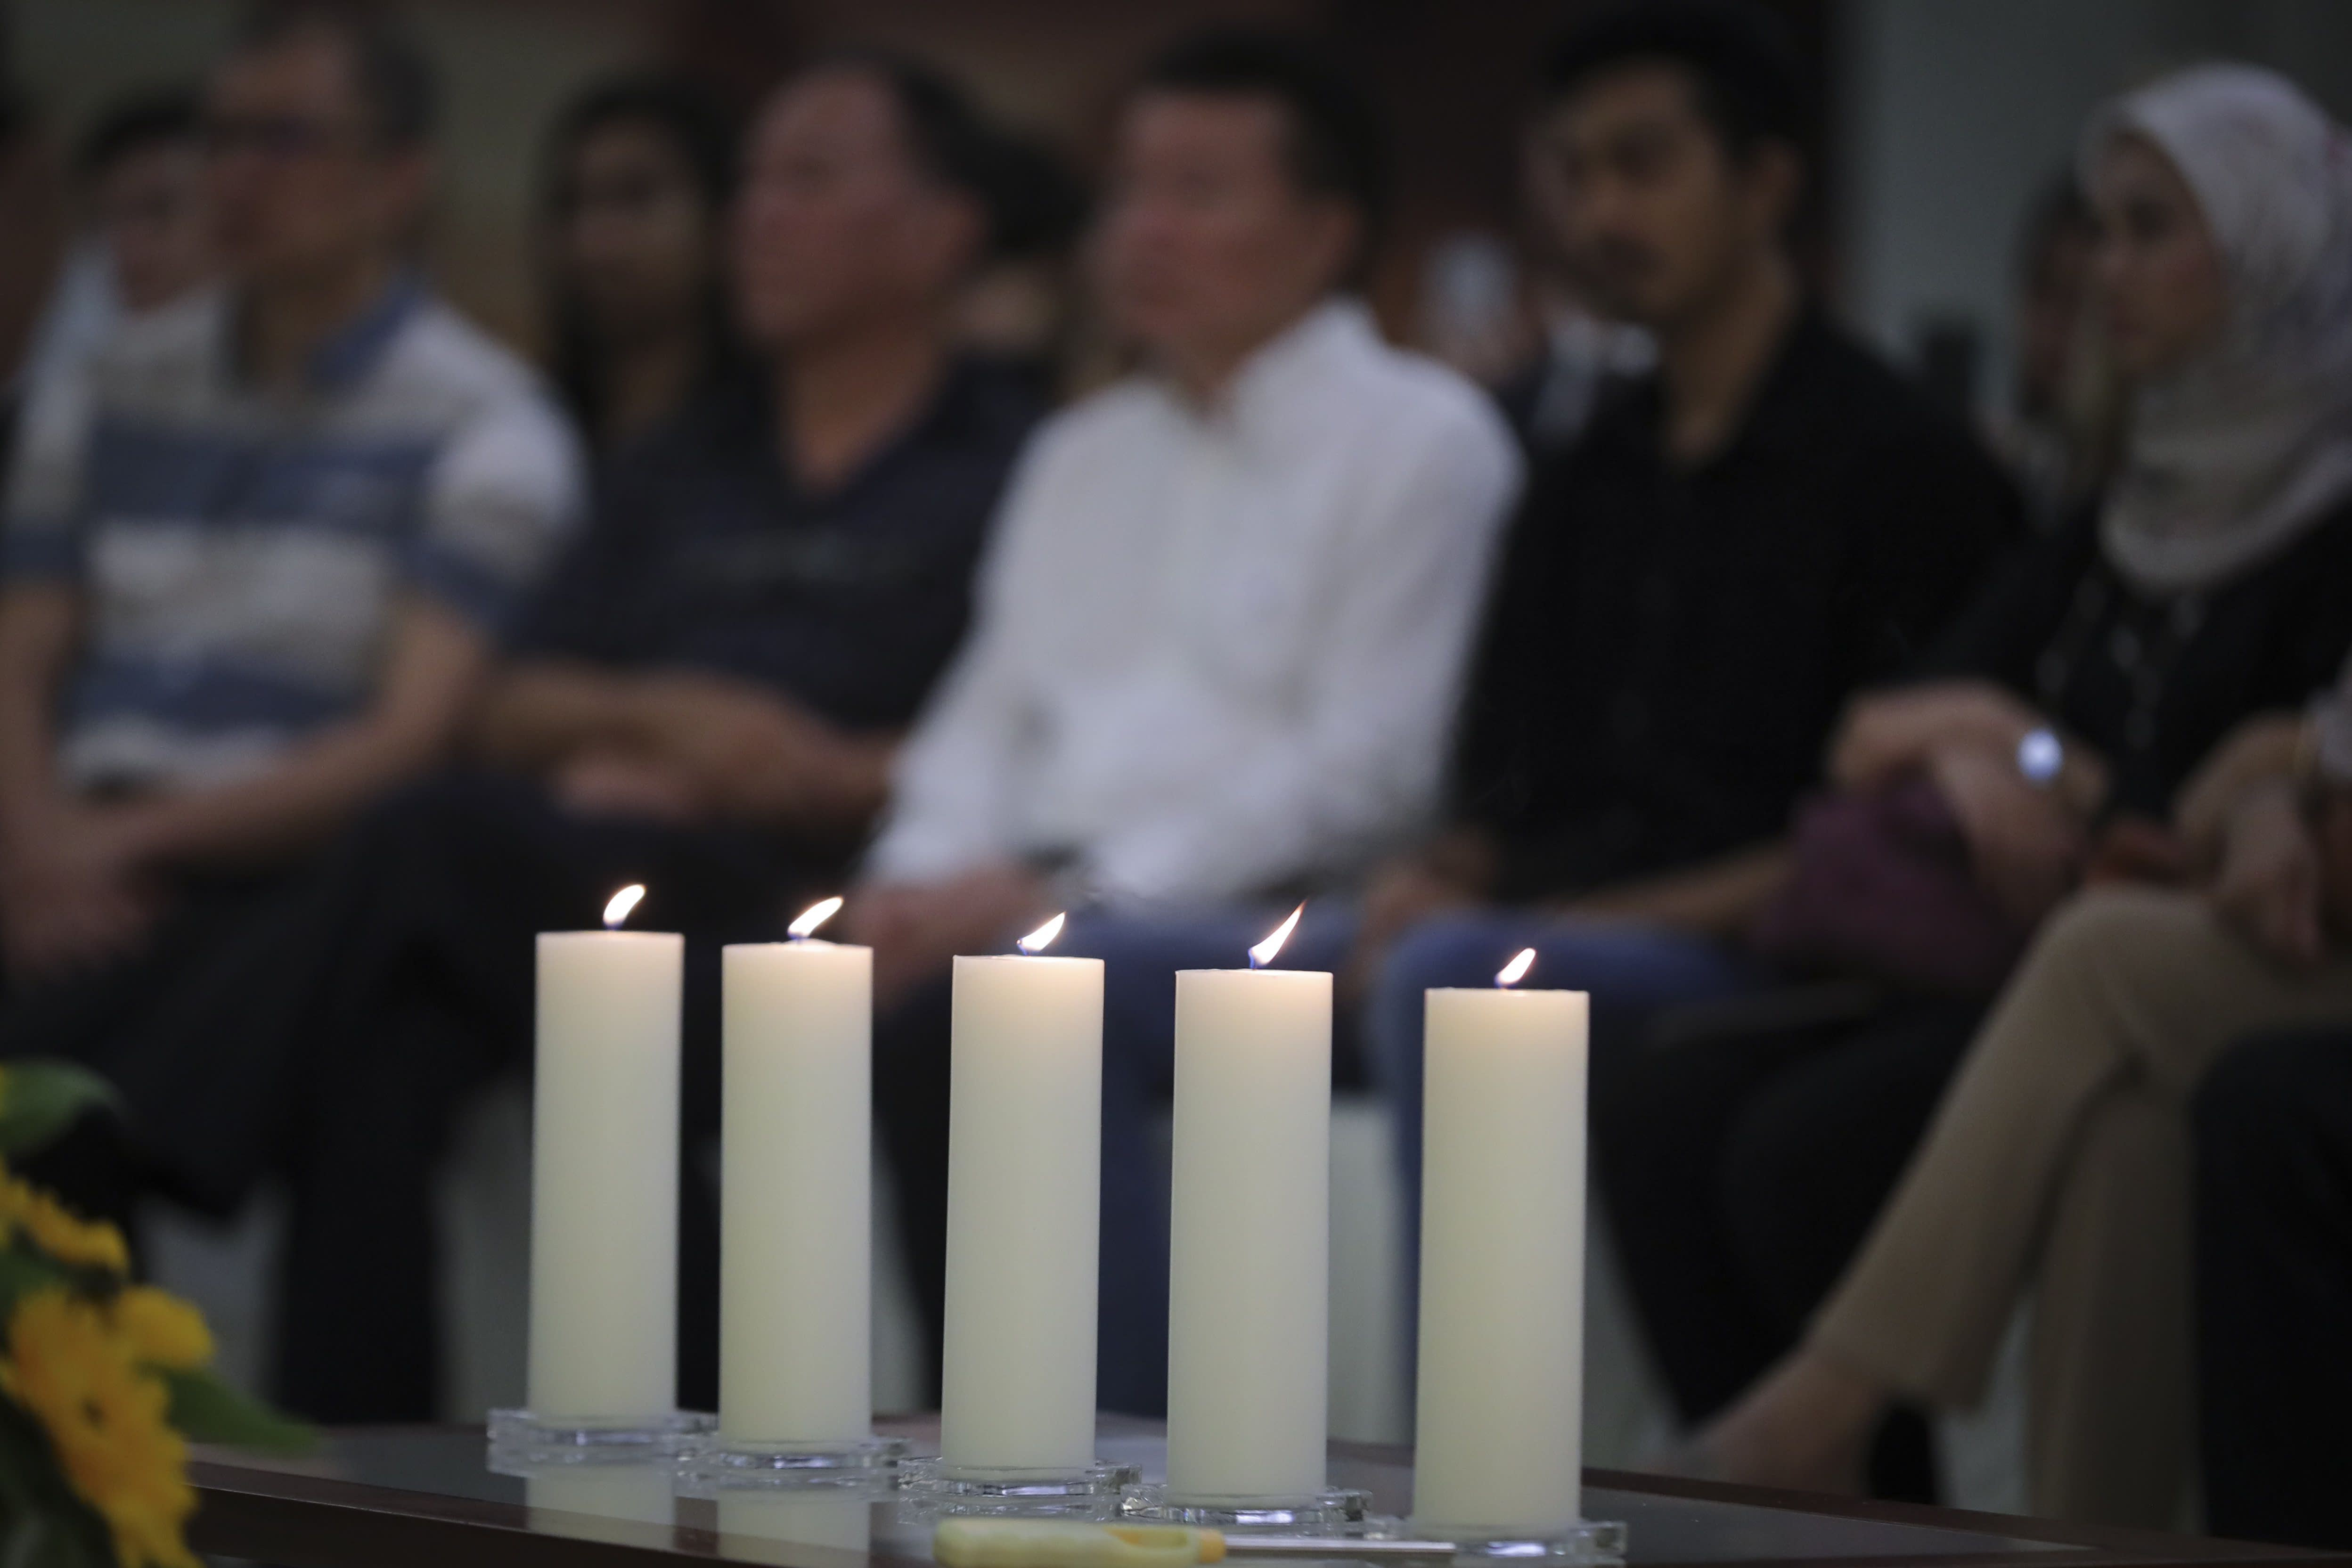 Friends and family of victims from Malaysia Airlines Flight MH17 plane crash attend a ceremony marking the fifth anniversary of the tragedy in Kuala Lumpur, Malaysia, Wednesday, July 17, 2019. Five years after a missile blew Malaysia Airlines Flight 17 out of the sky above eastern Ukraine, relatives and friends of those killed gathered Wednesday in Kuala Lumpur and at a Dutch memorial to mark the anniversary. (AP Photo/Vincent Thian)